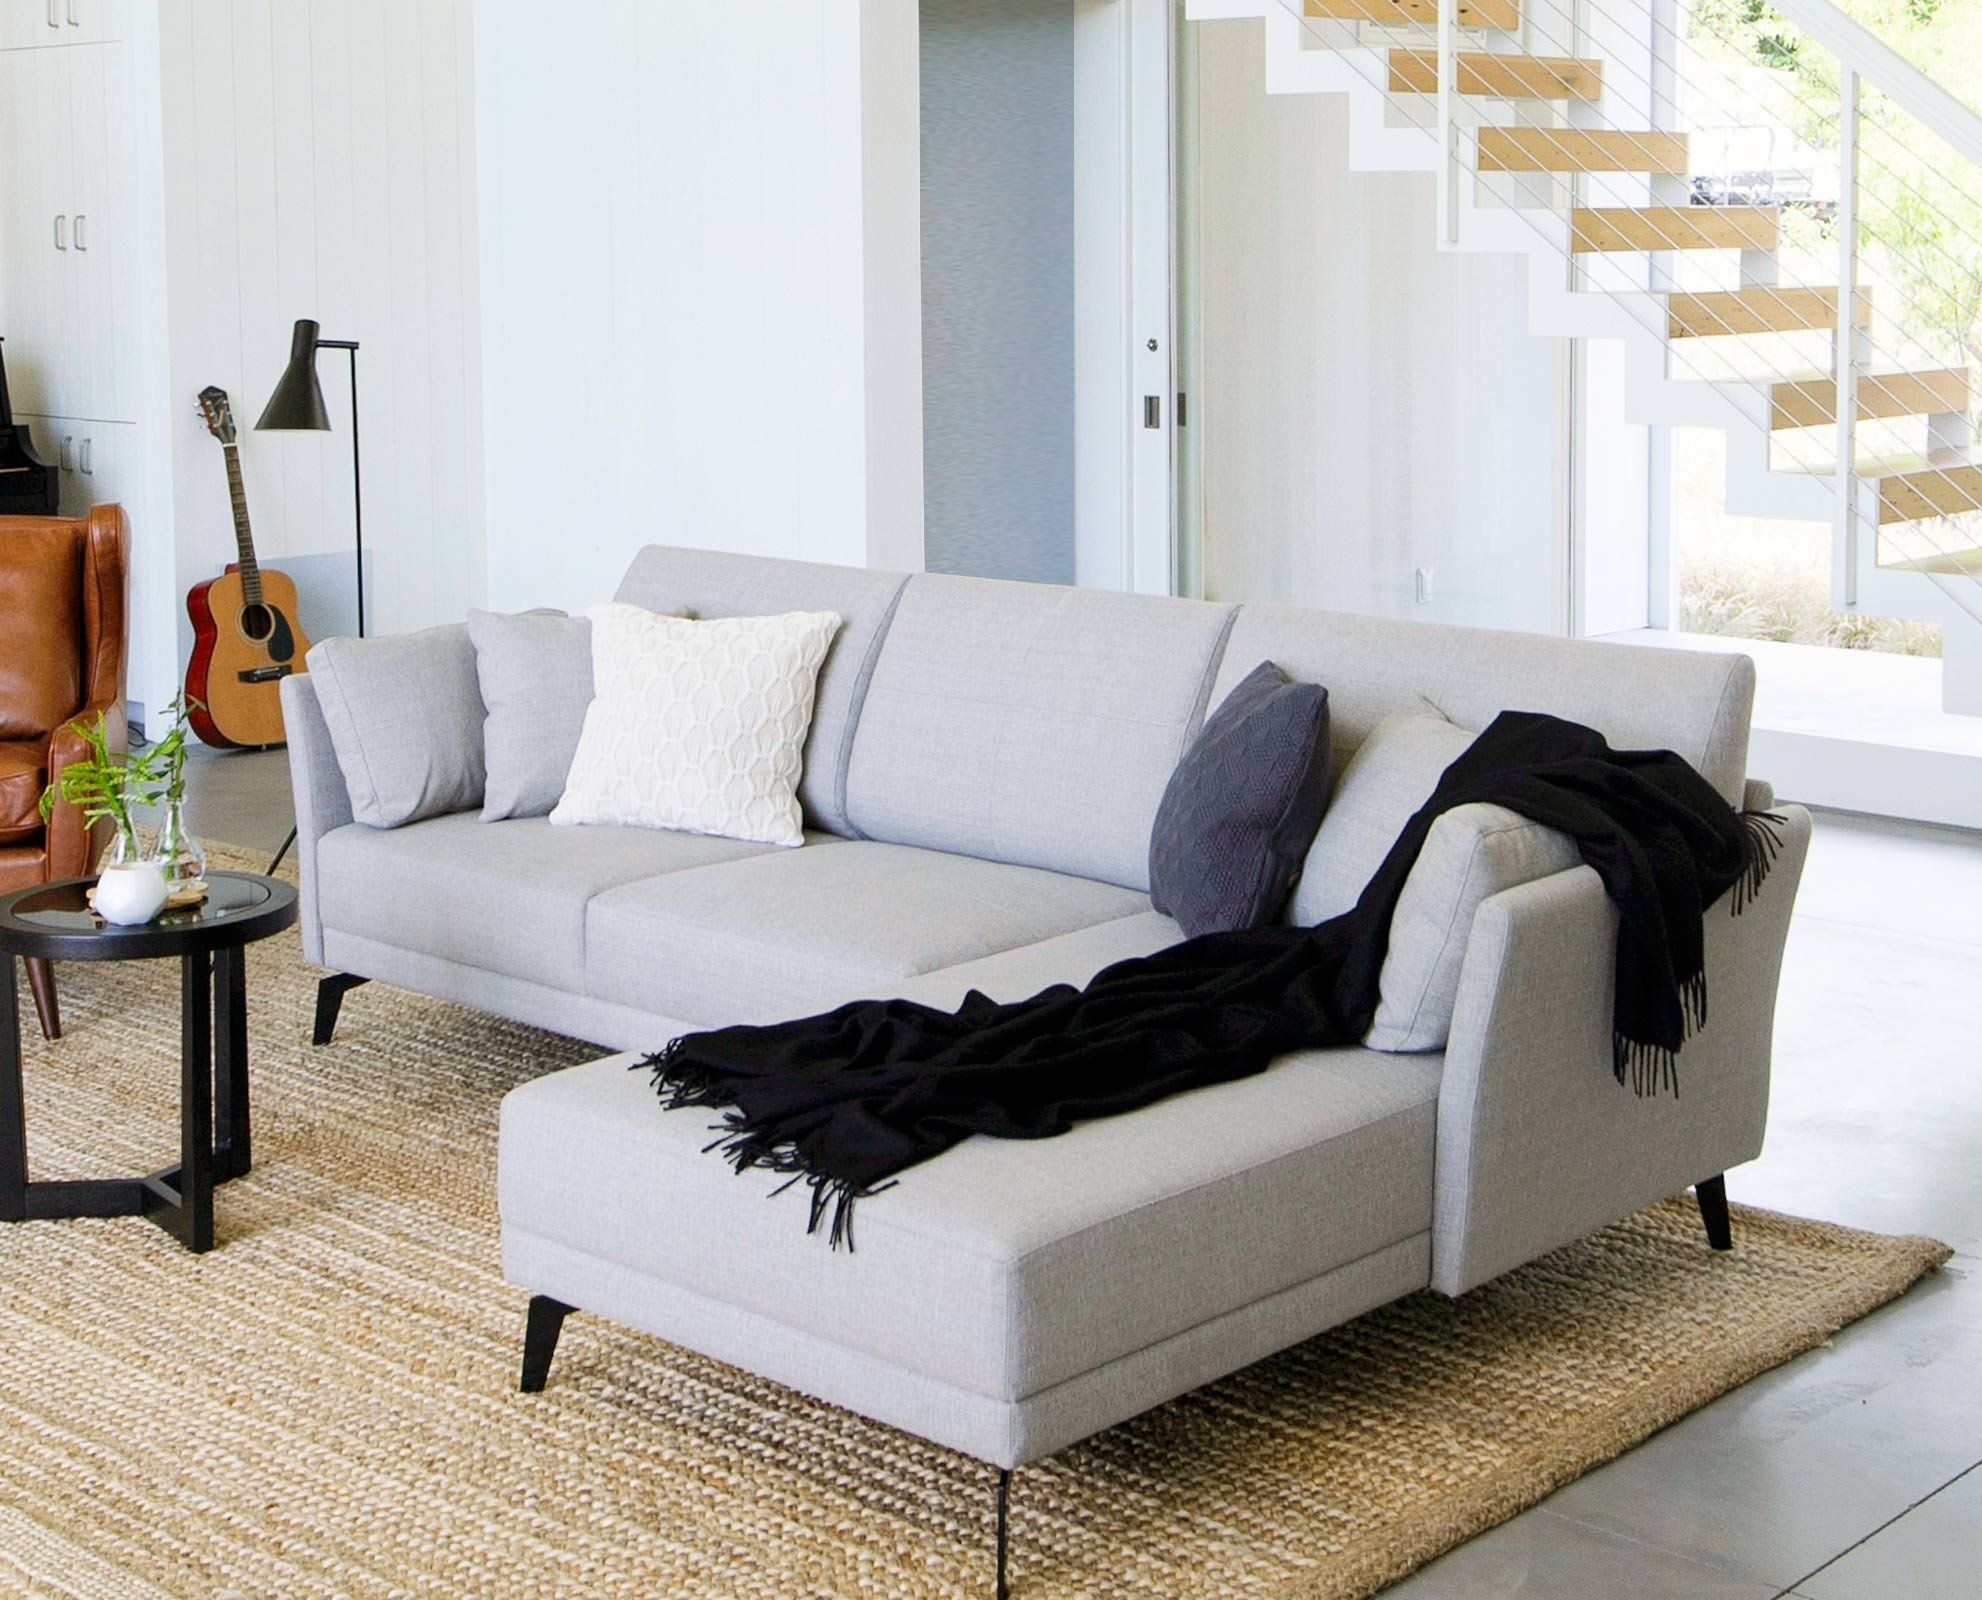 Modern Scandinavian Living Room Chaise Sofa By Scandis Tailored